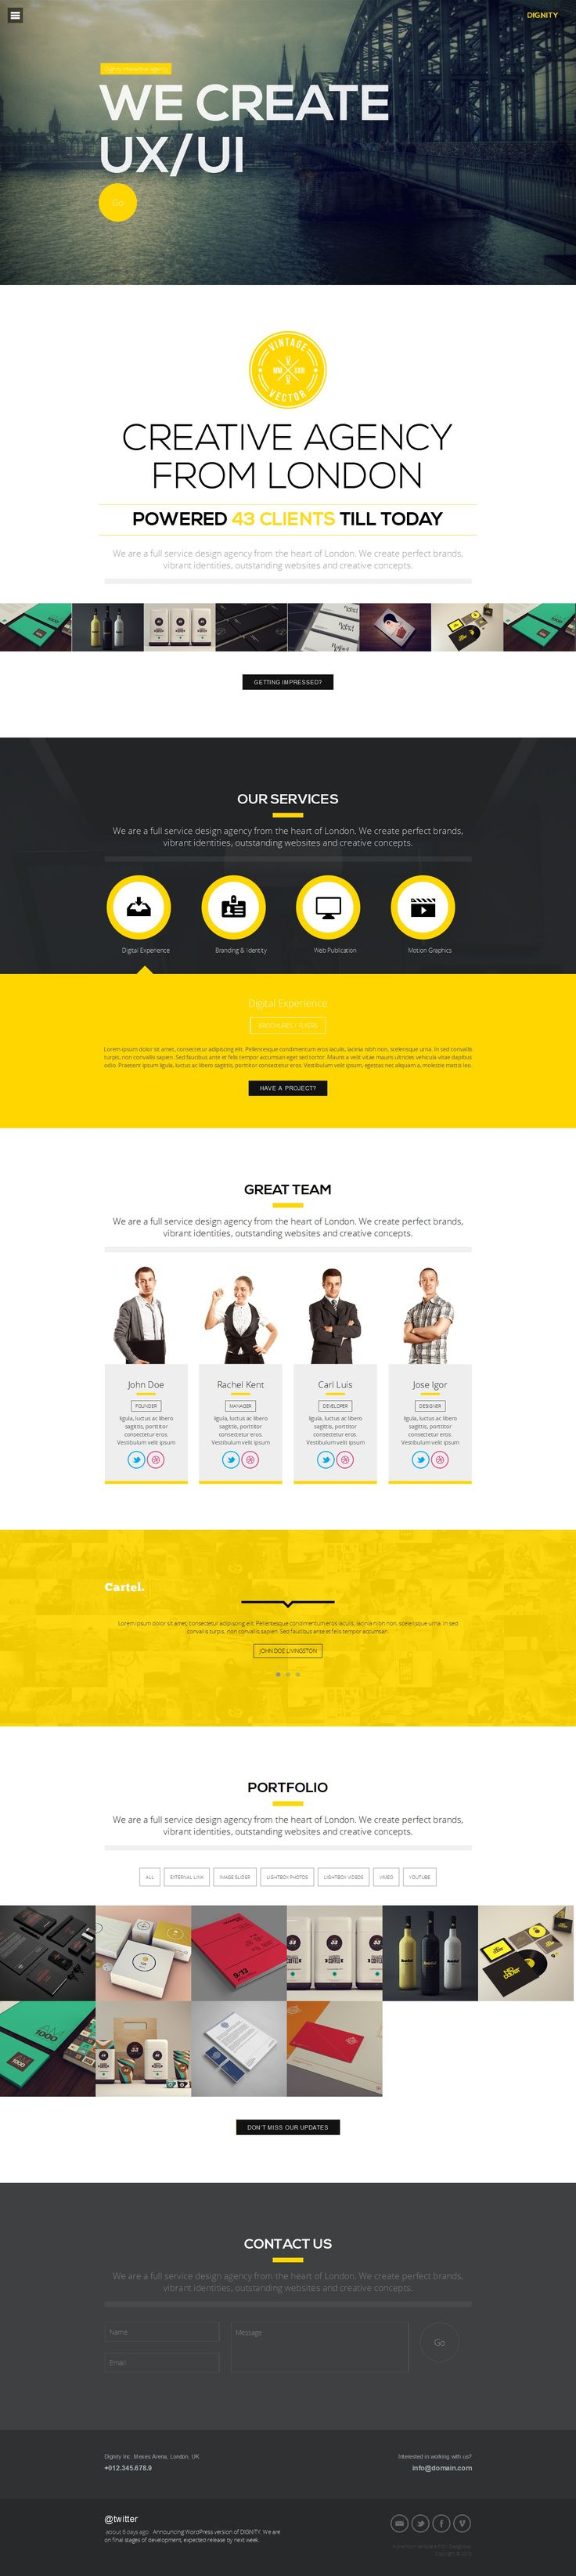 DIGNITY - WordPress One Page Responsive Portfolio  http://themeforest.net/item/dignity-wordpress-one-page-responsive-portfolio/6538685?ref=wpaw #web #design #wordpress #portfolio